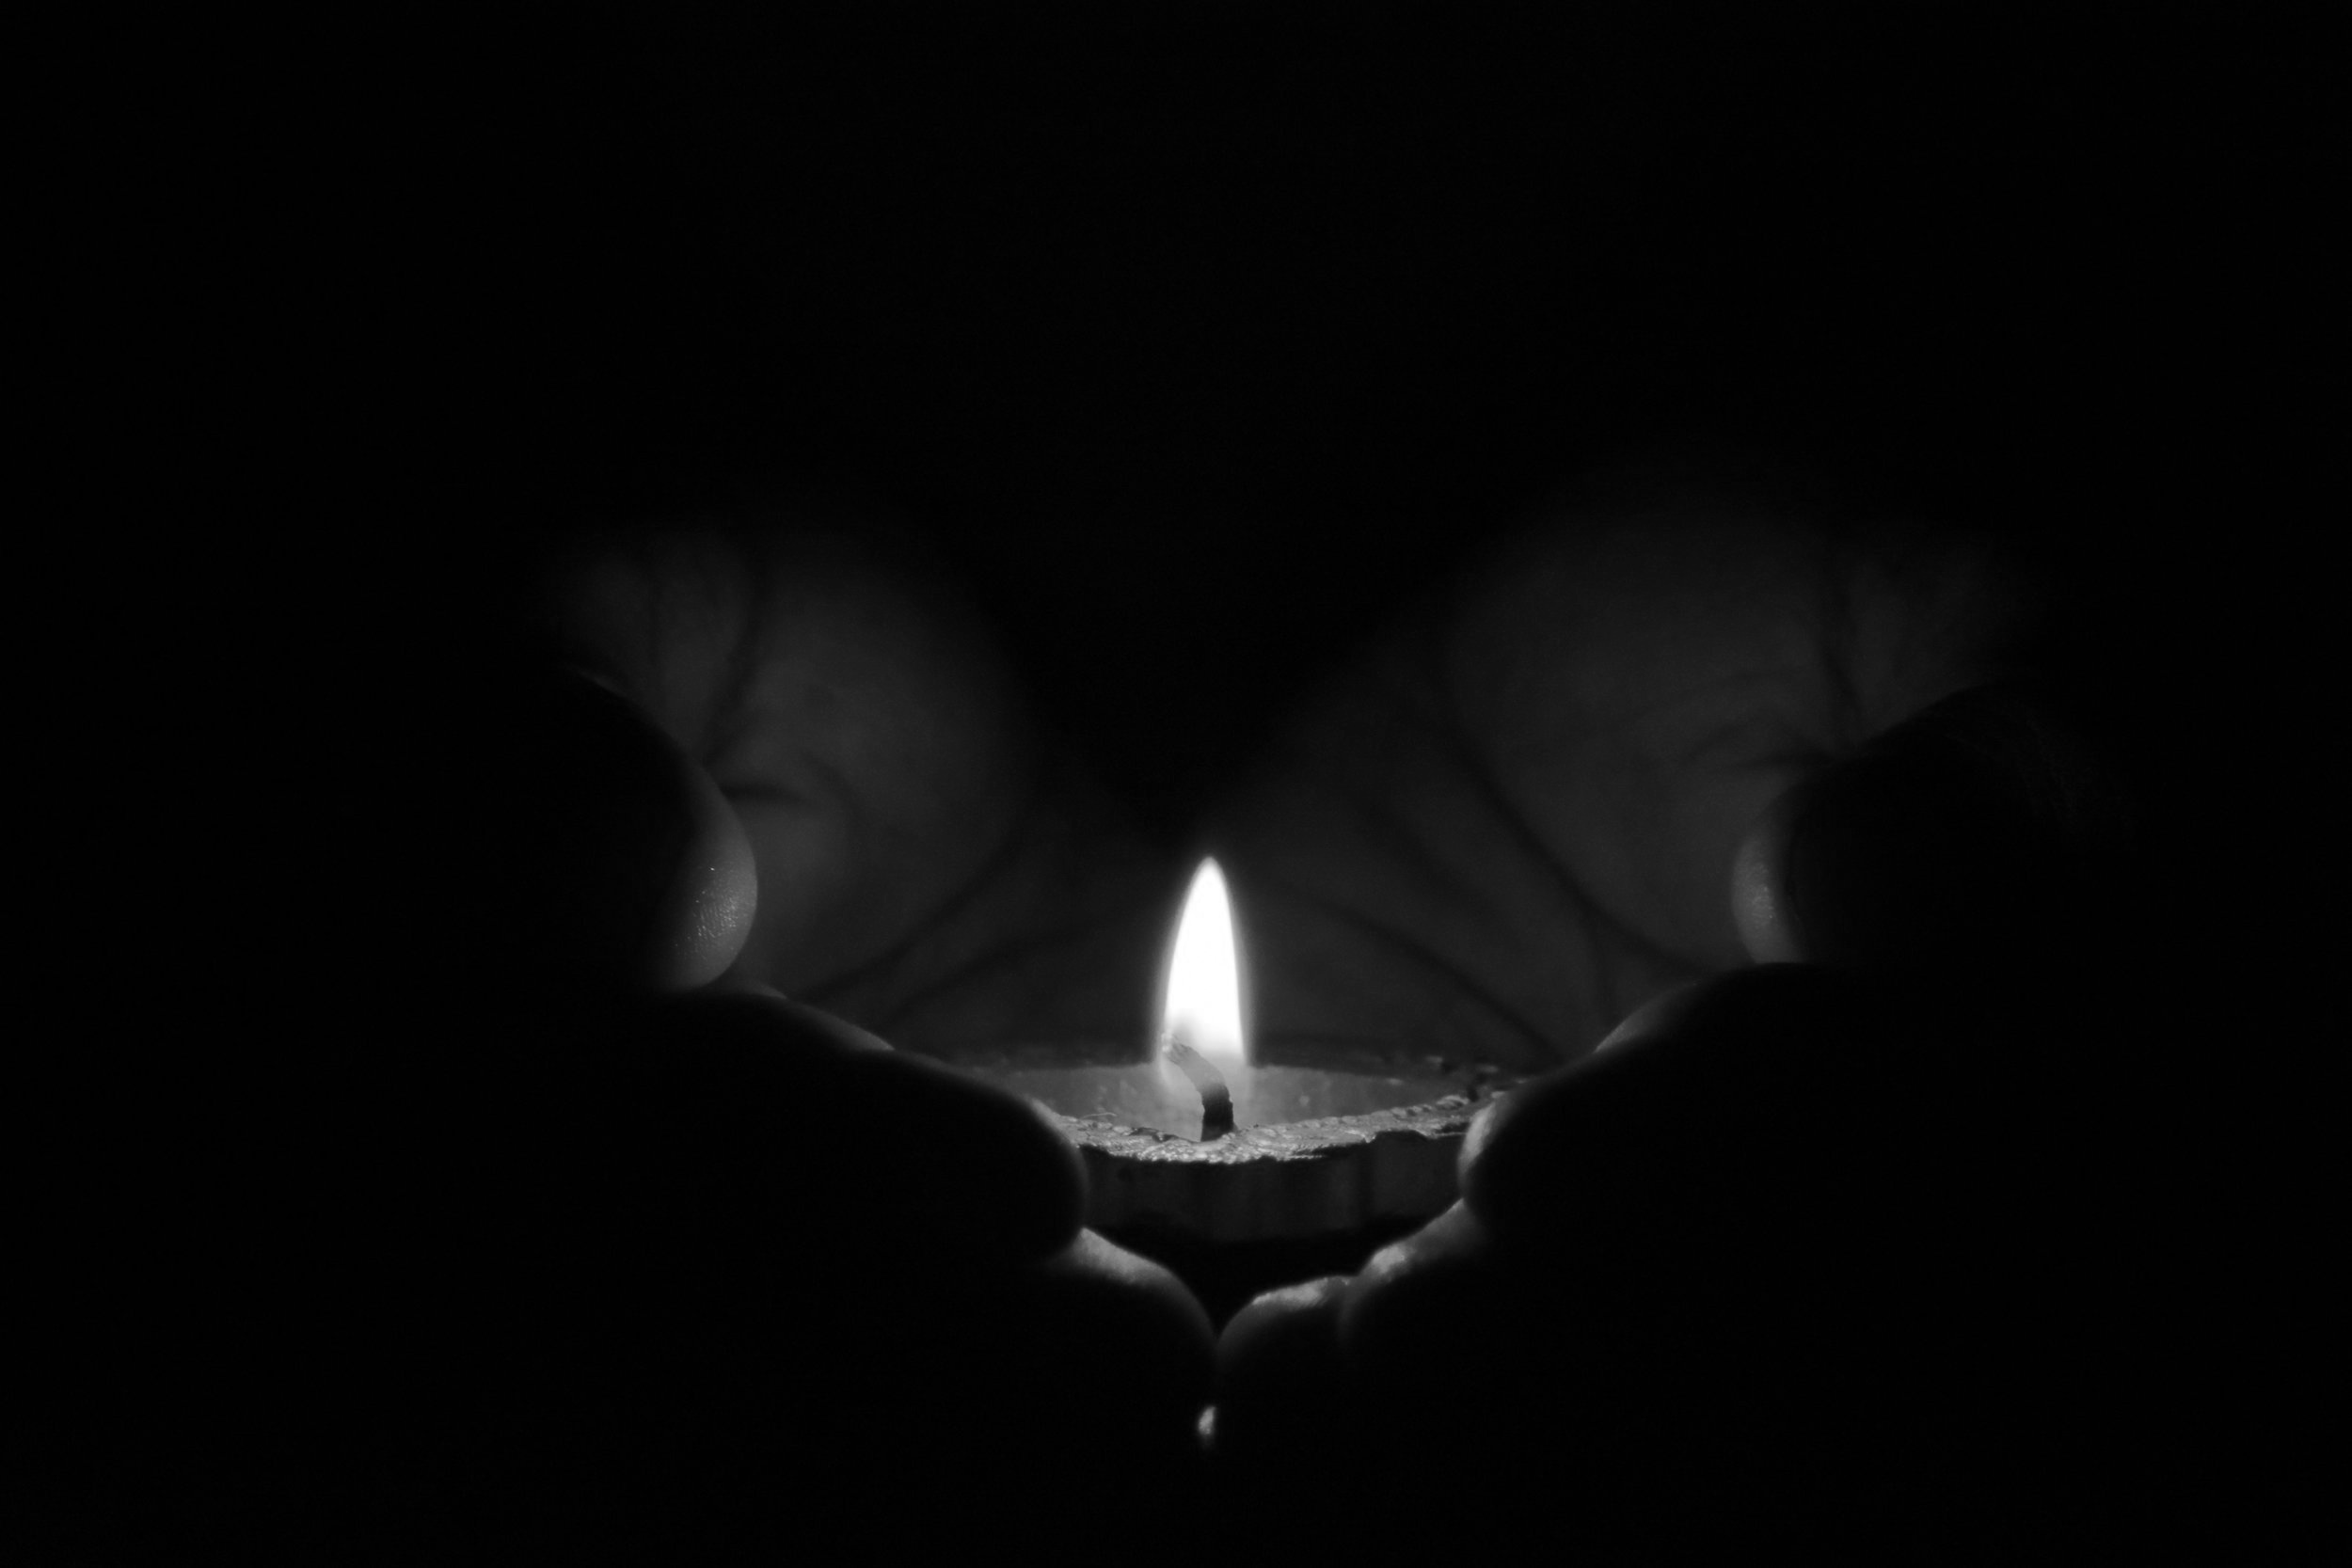 Imagine - …a space lit with candles, the roll of singing bowls circling our limbs, the smell of flowers reminding us of our own essence and then imagine moving slowly with breath and body, pose to pose, pausing to brush the arch of your foot, whispering sweet nothings of your own sturdy beauty.